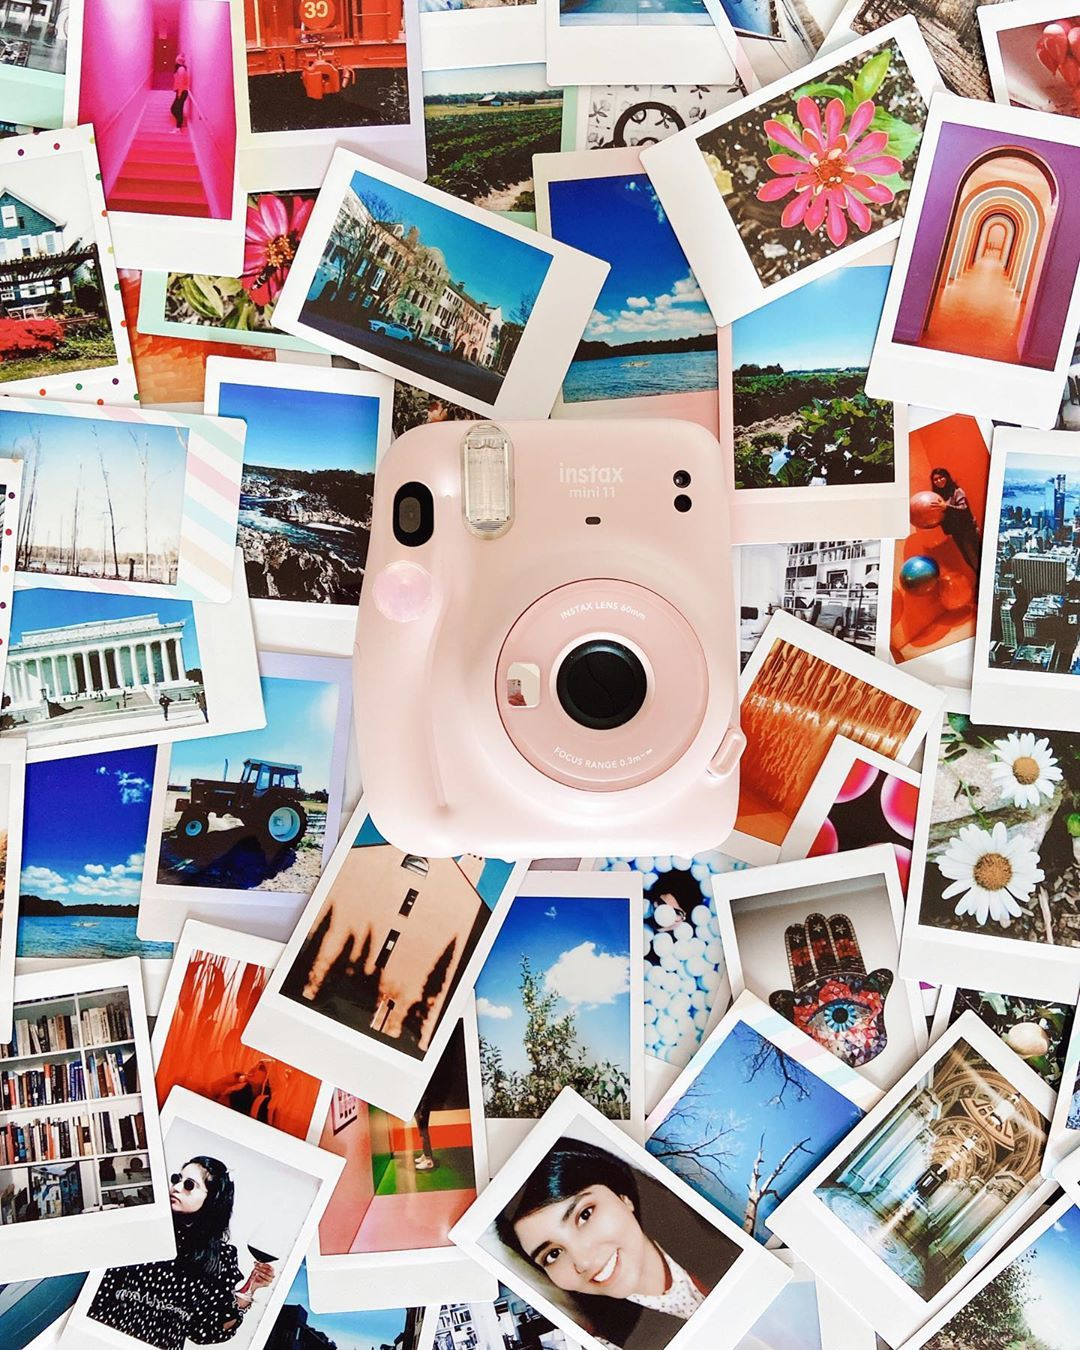 """VR on Instagram: """"Happy World Photography Day!! #amaturephotography #polaroid #photography #photographylovers #photographyday ##photography #photooftheday…"""""""